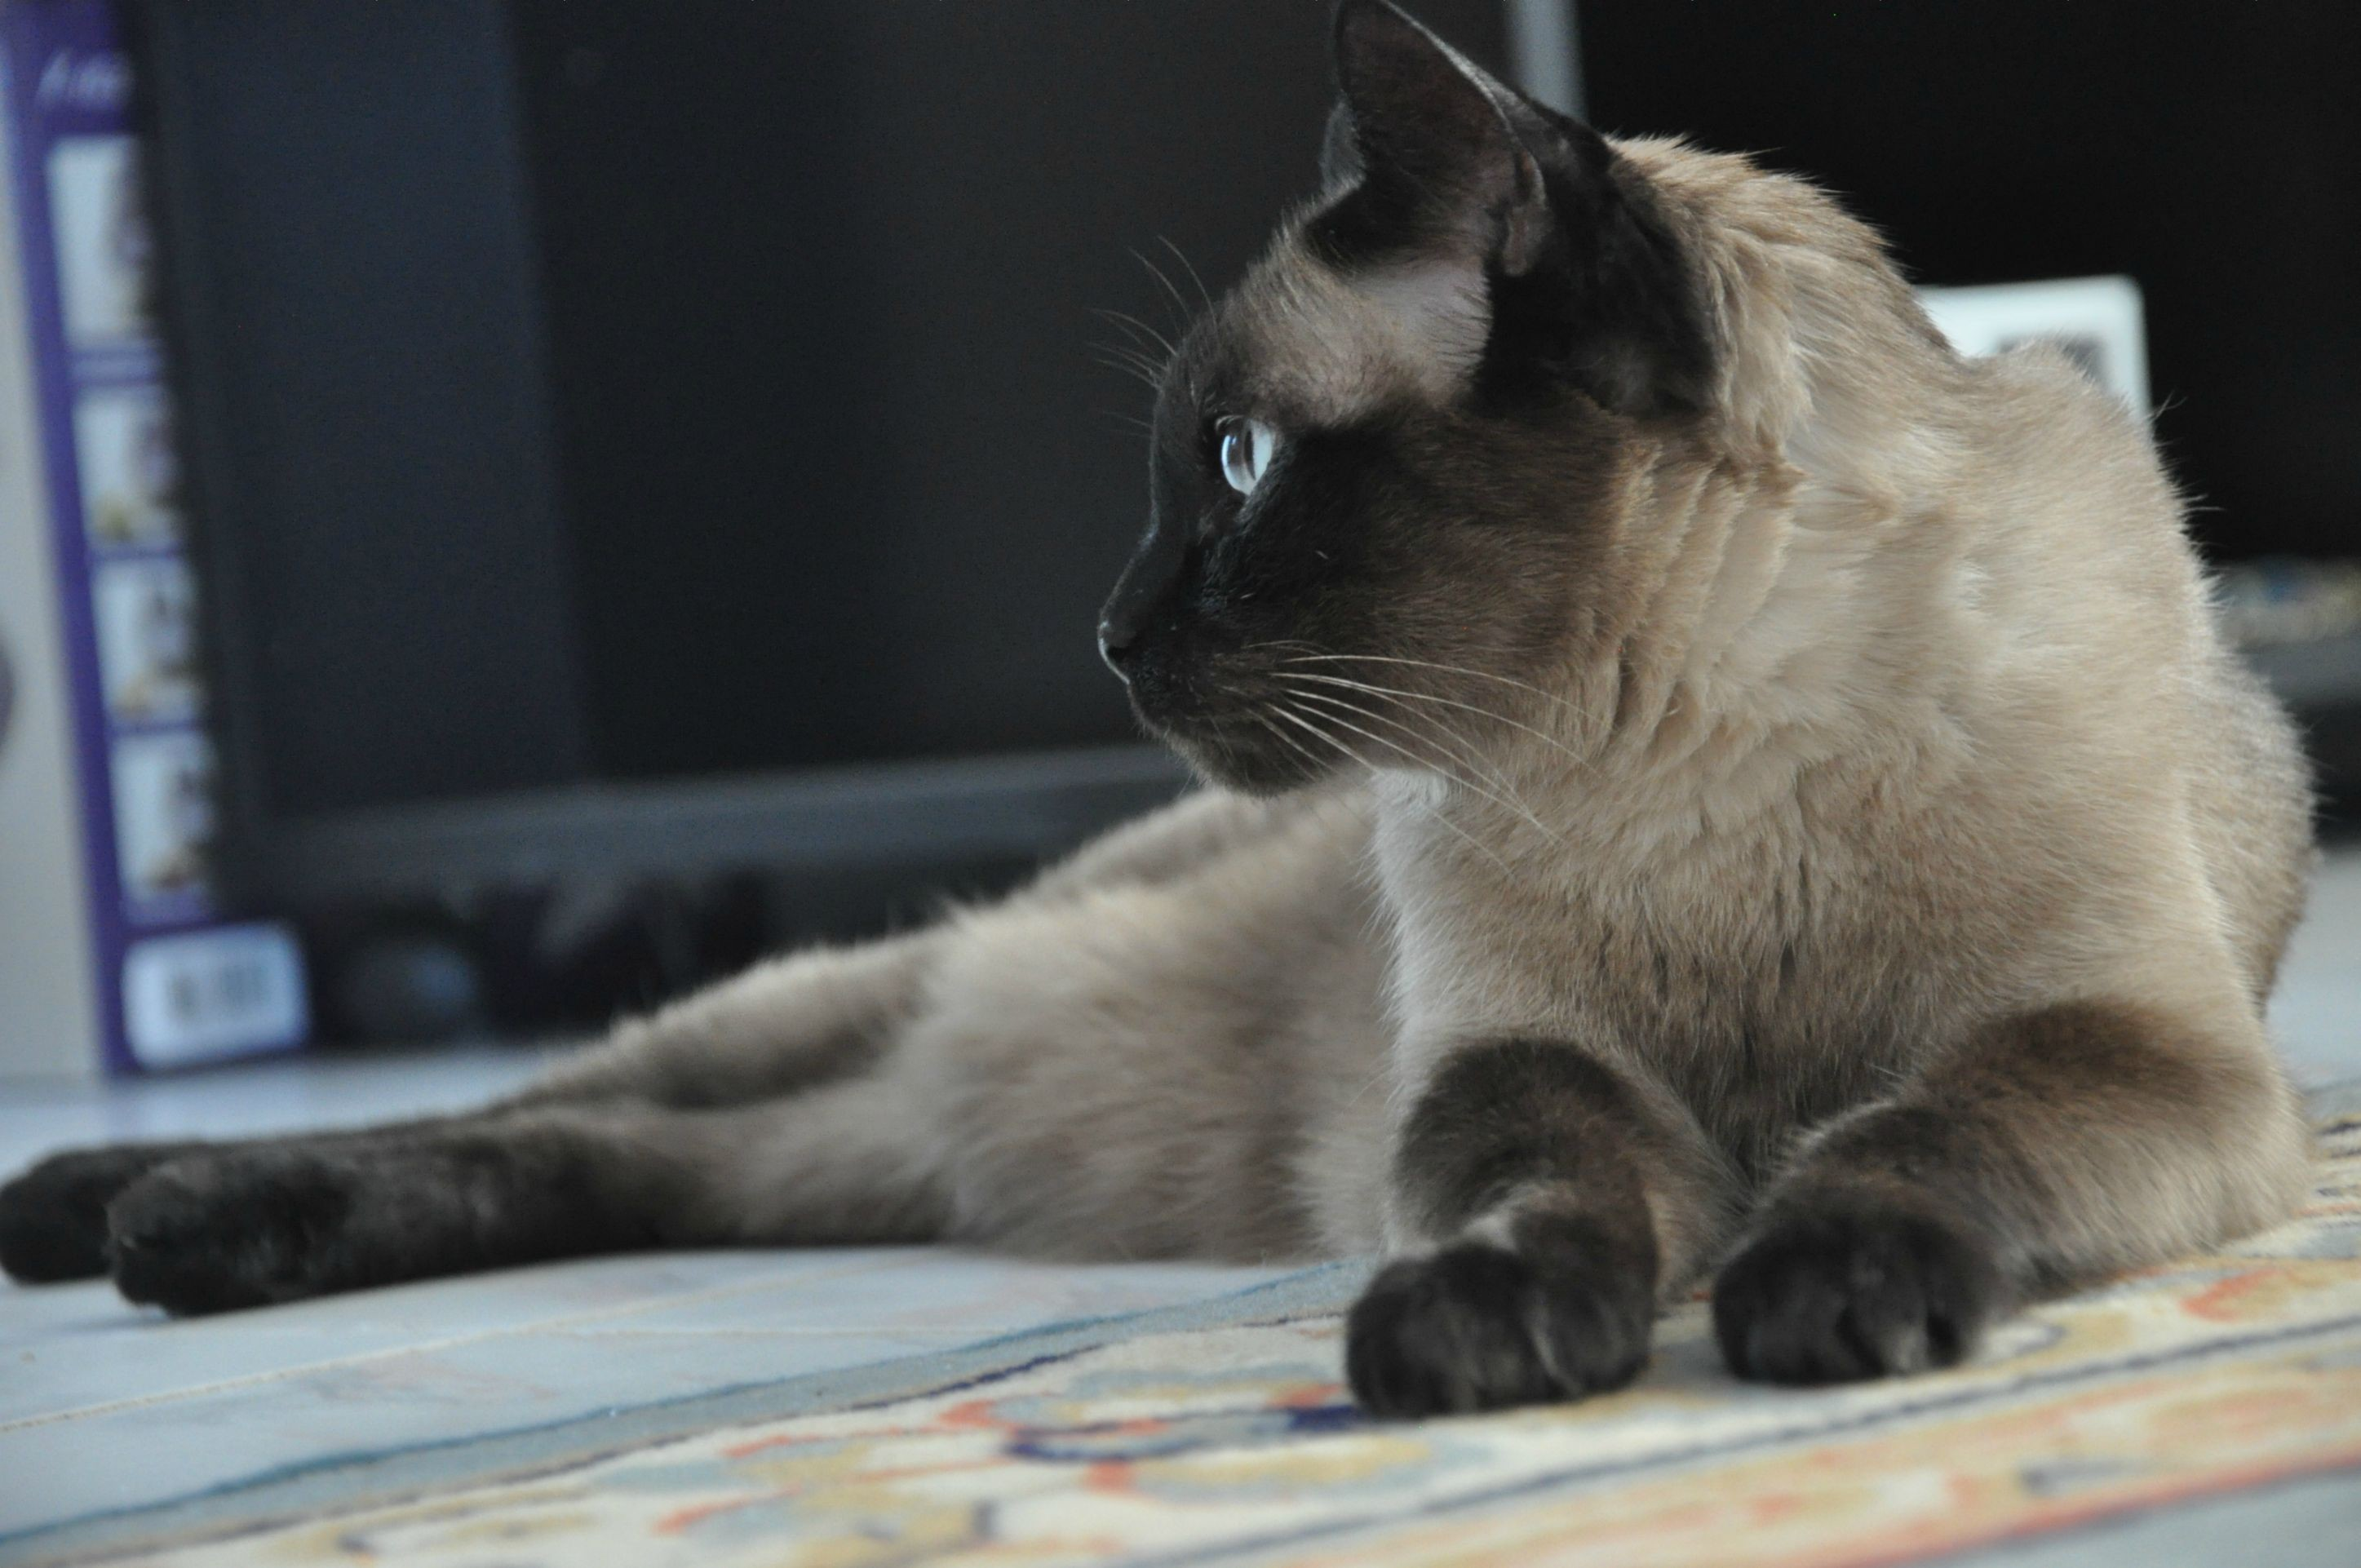 2894x1922 Adult Siamese cat resting wallpapers and images - wallpapers, pictures,  photos